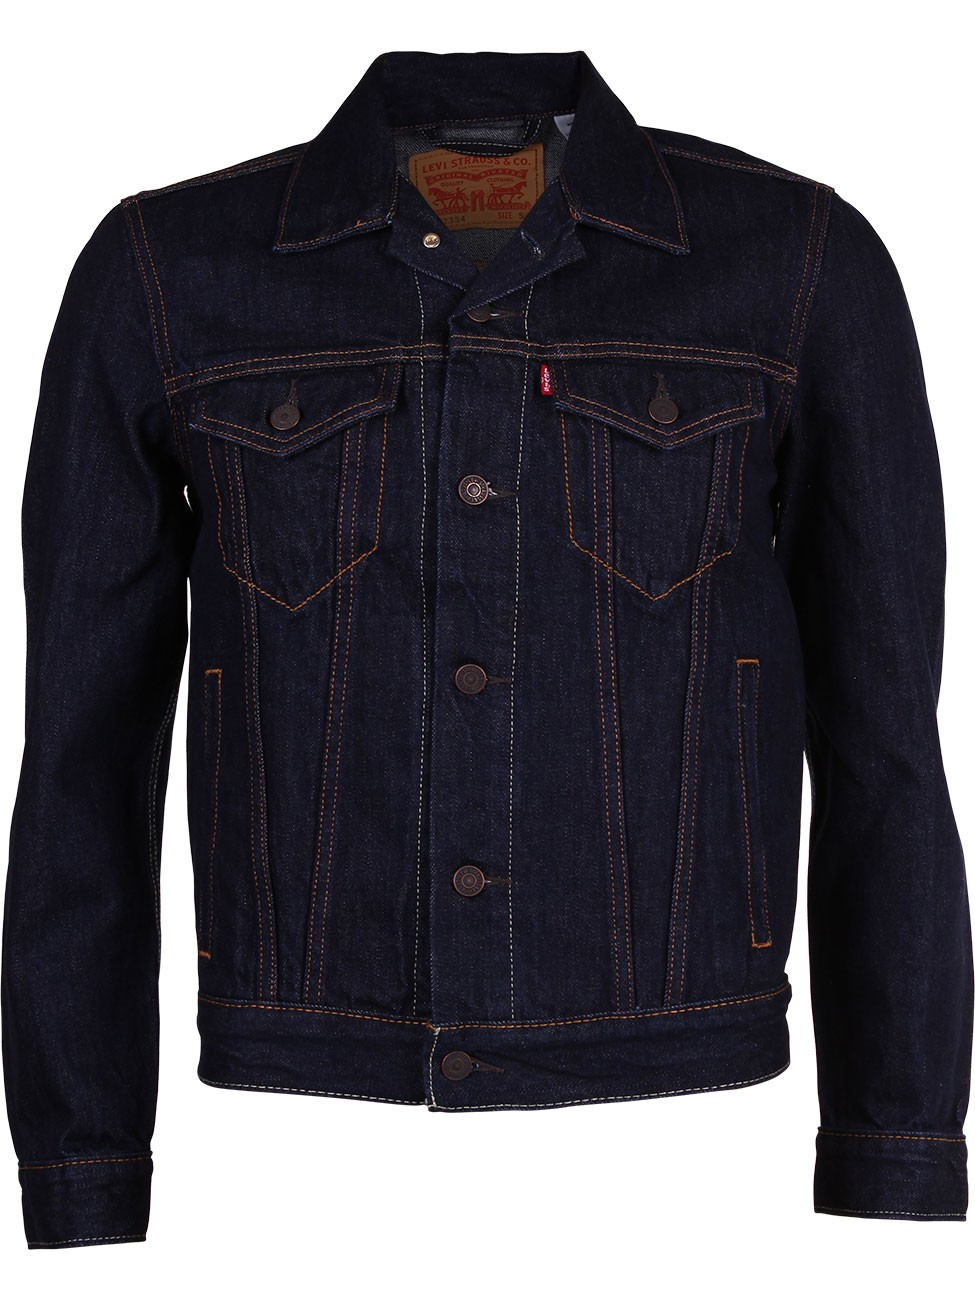 Herren jeansjacke the trucker jacket